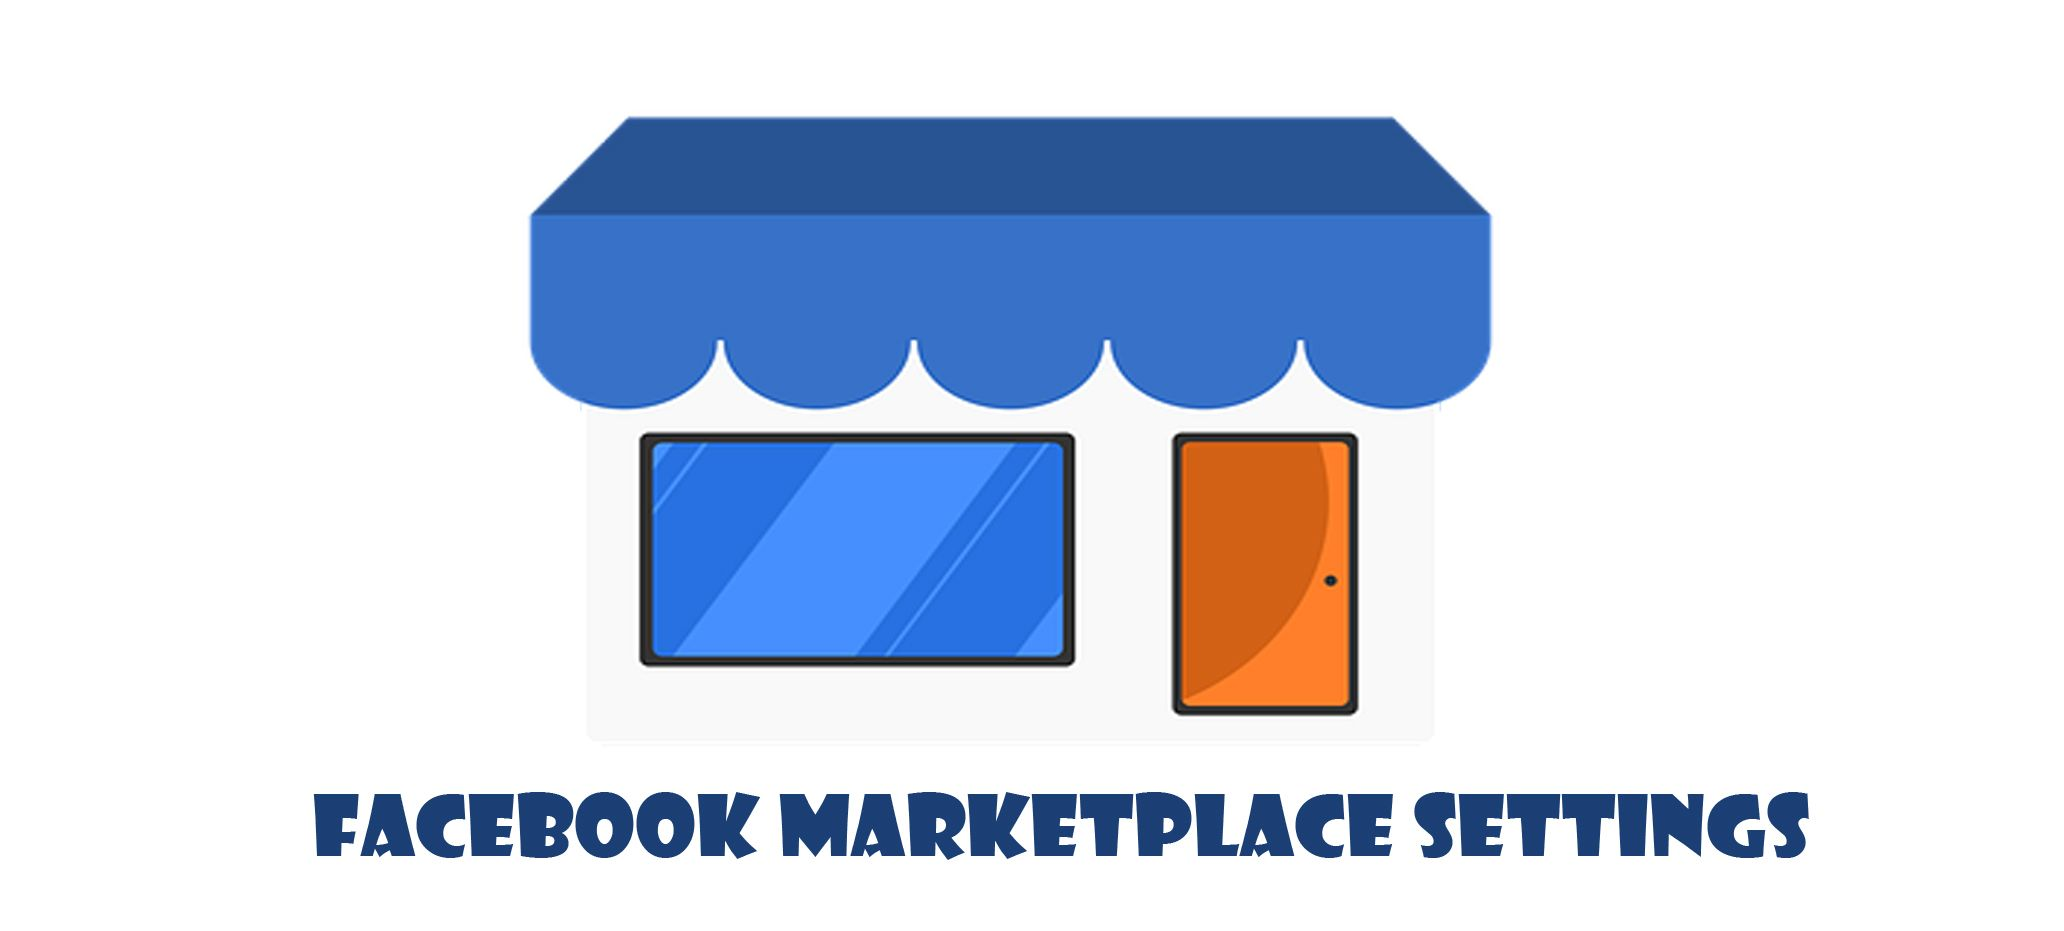 Facebook Marketplace Settings - Facebook Business | AO3D COM